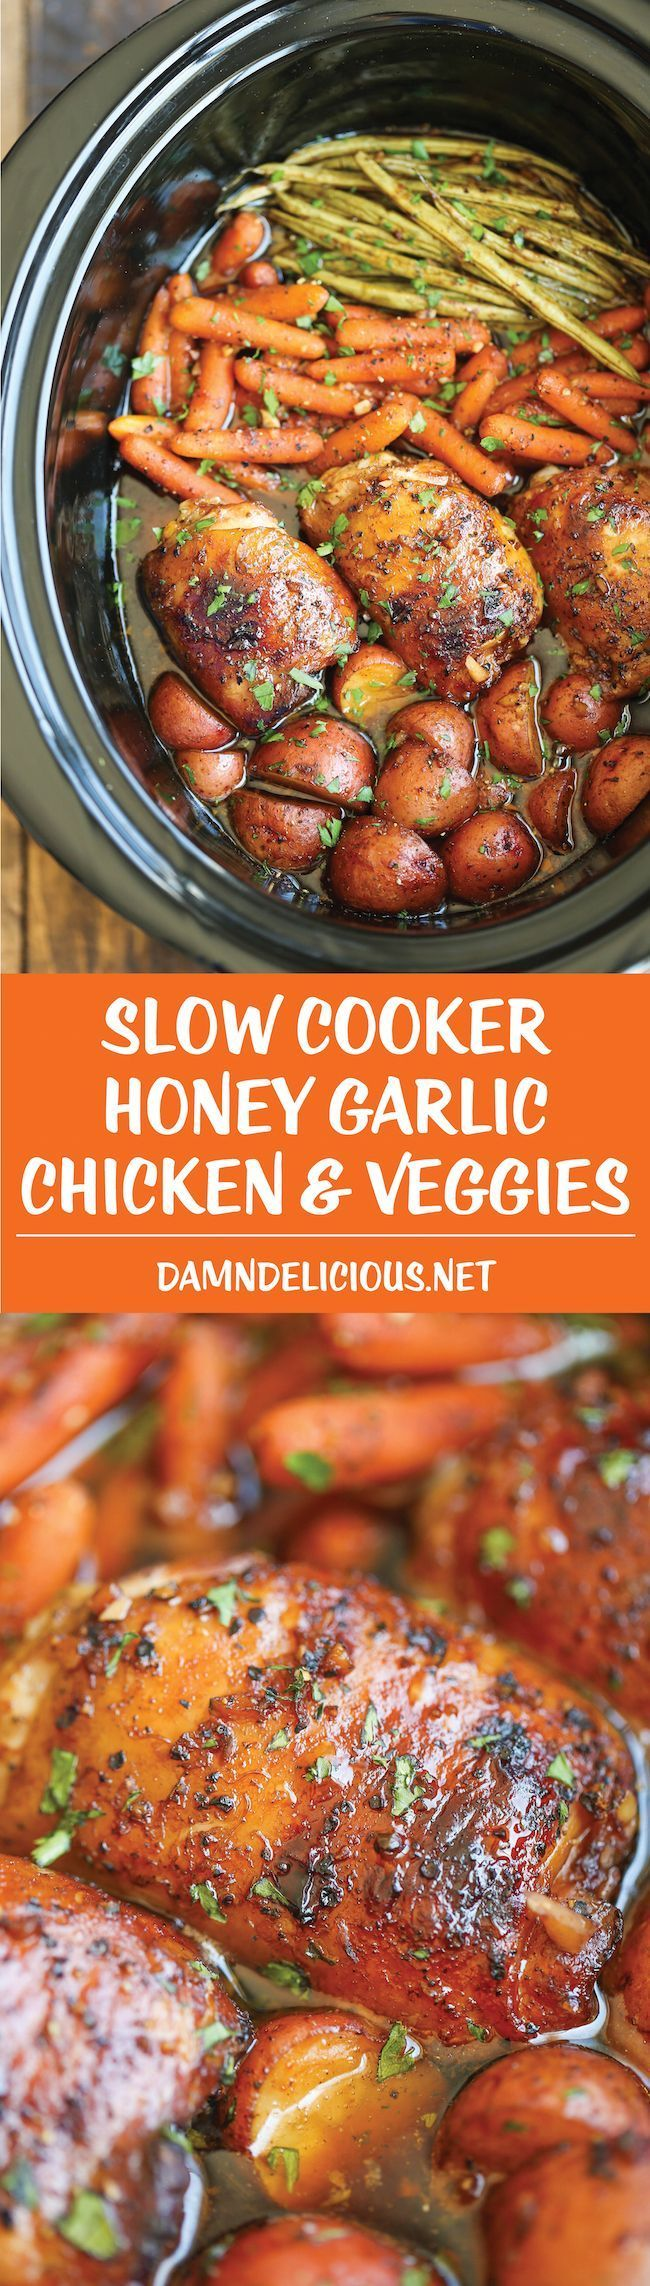 Slow Cooker Honey Garlic Chicken and Veggies – The easiest one pot recipe ever. Simply throw everything in and that's it! No